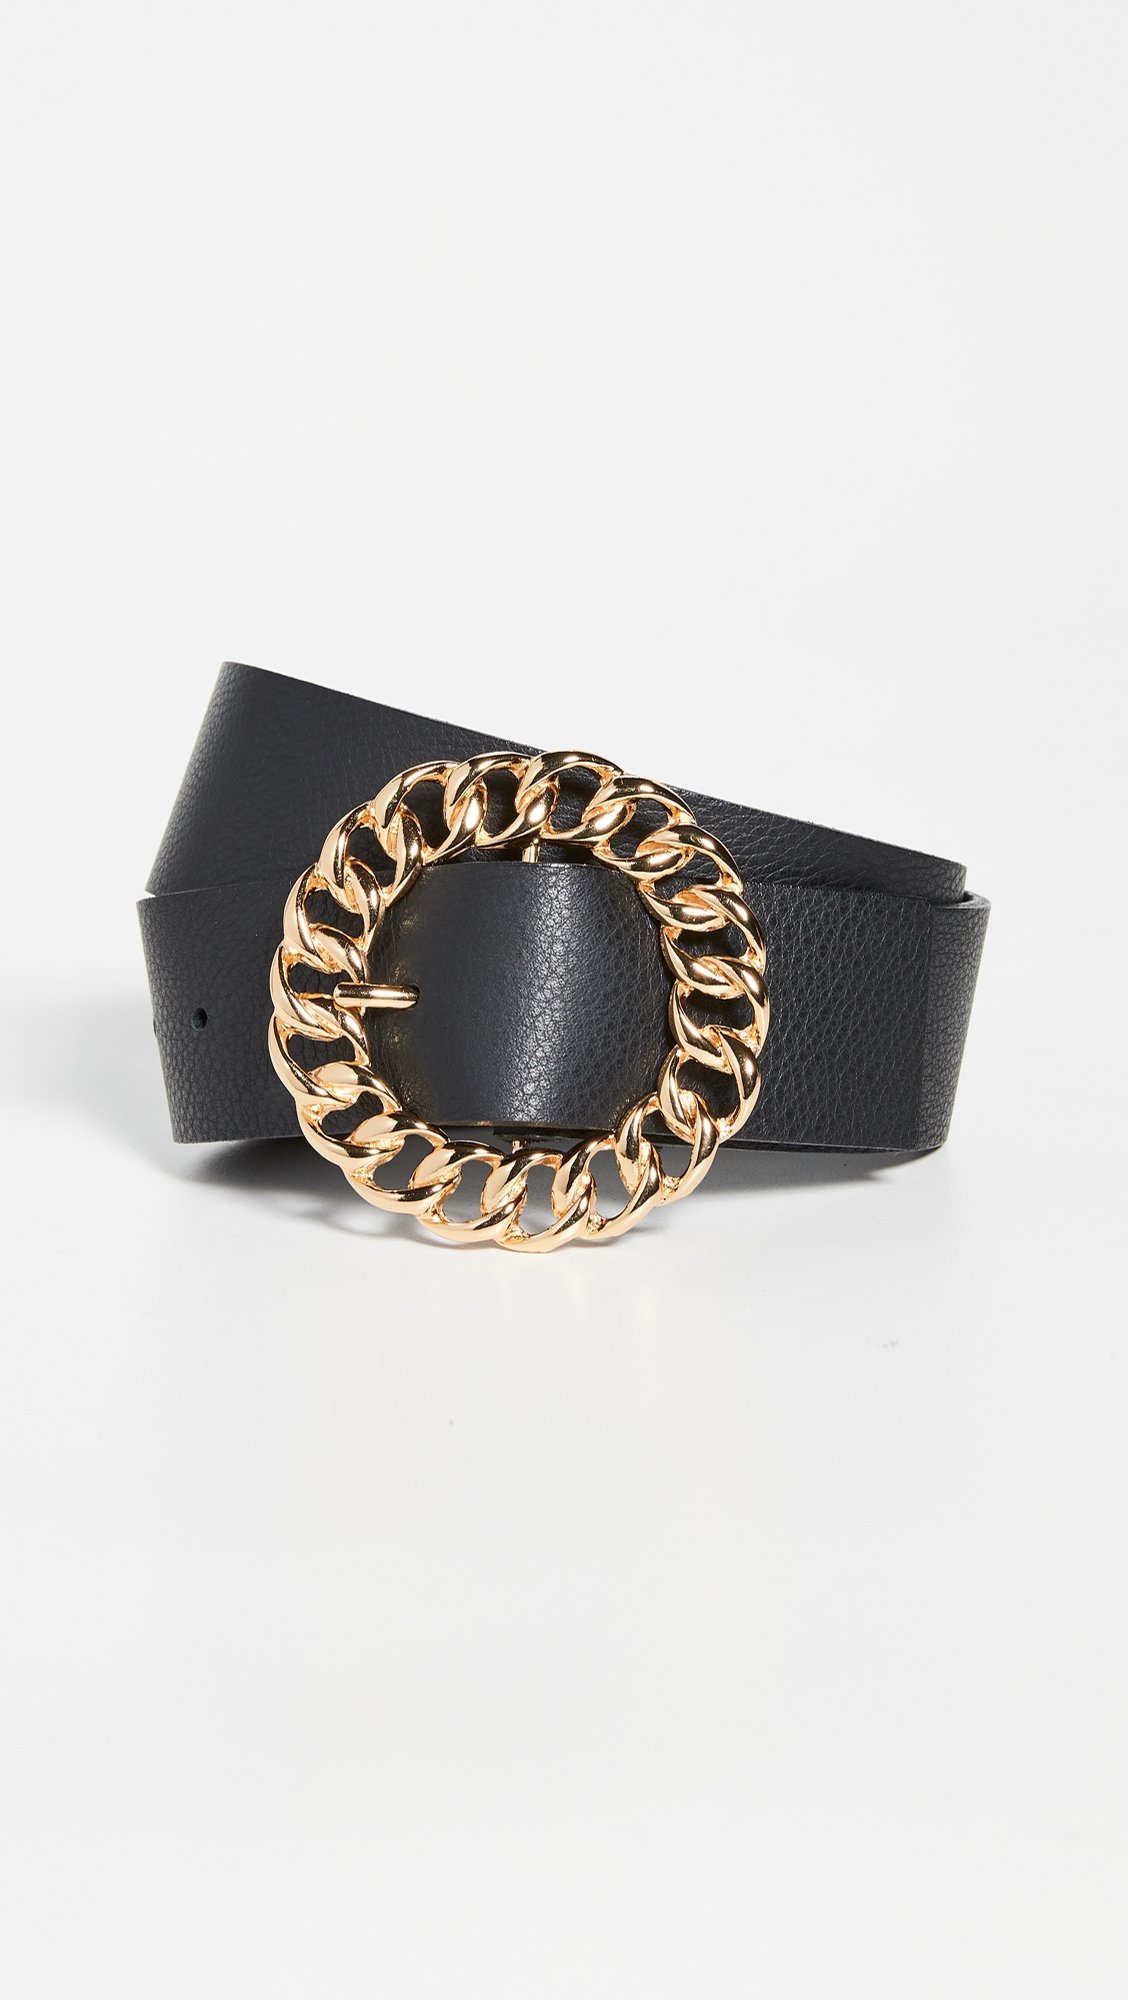 Black Leather Gold Chain Belt